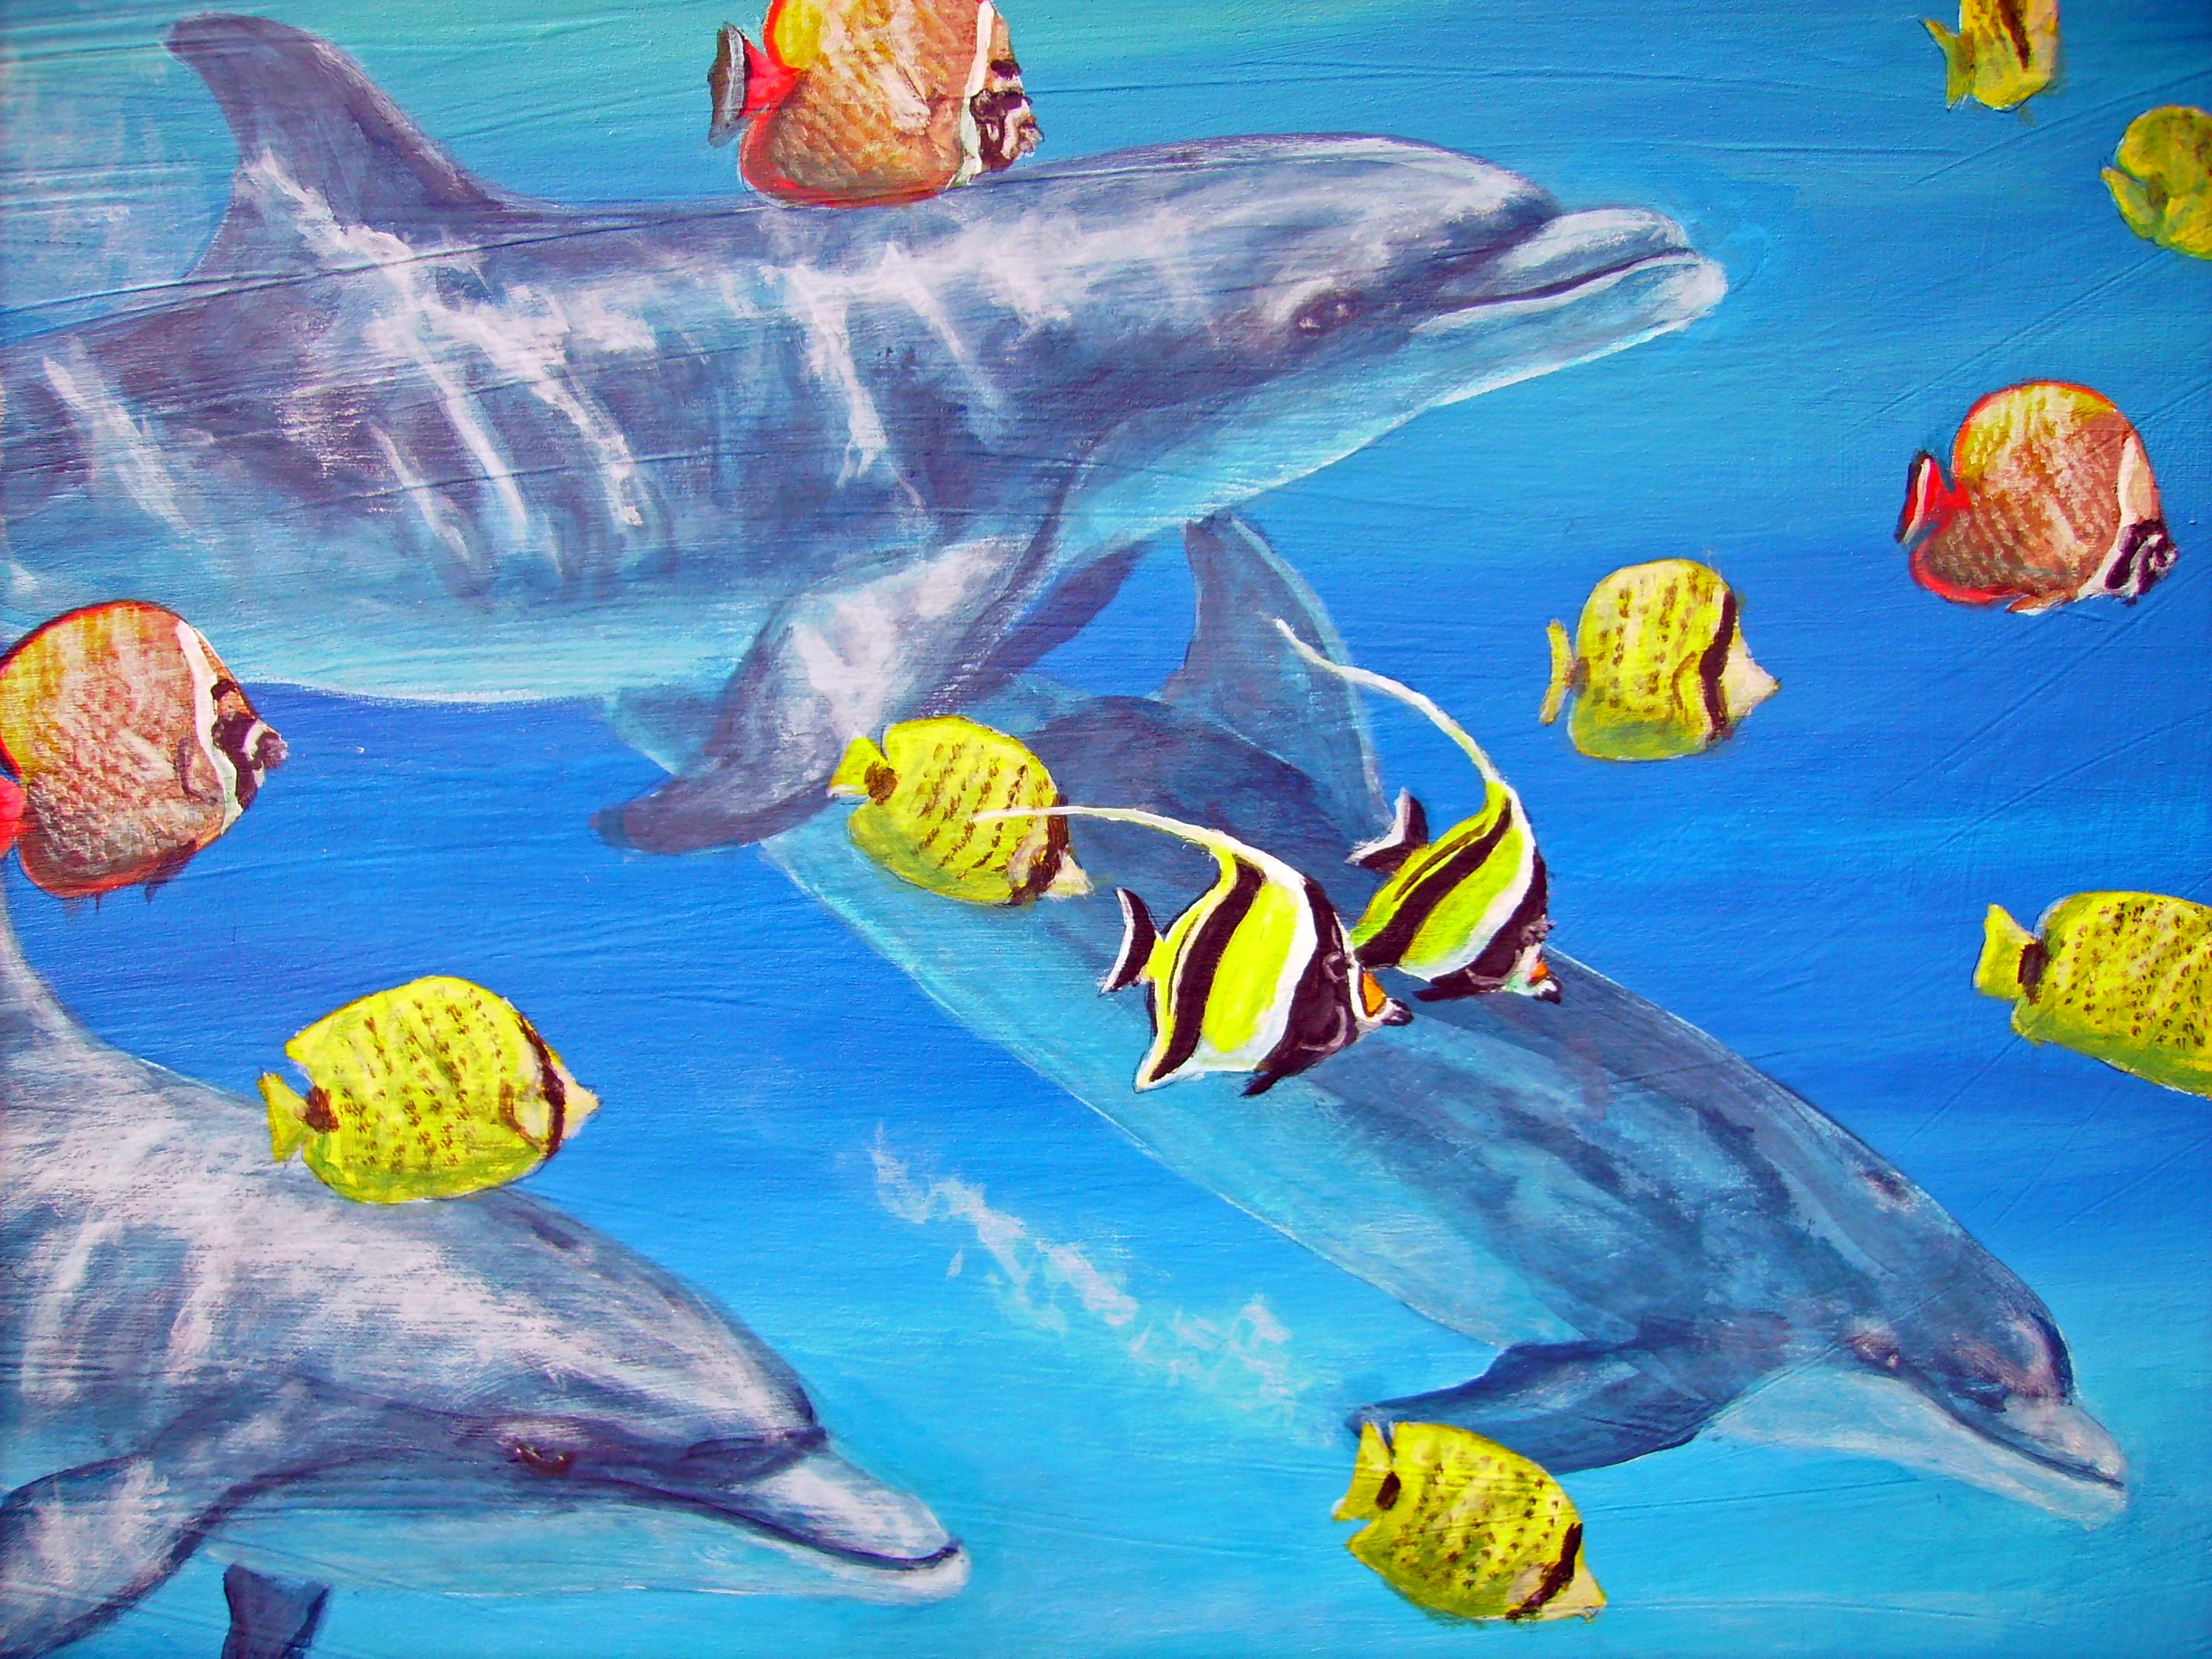 Painting of dolphins and tropical fish underwater | My ...